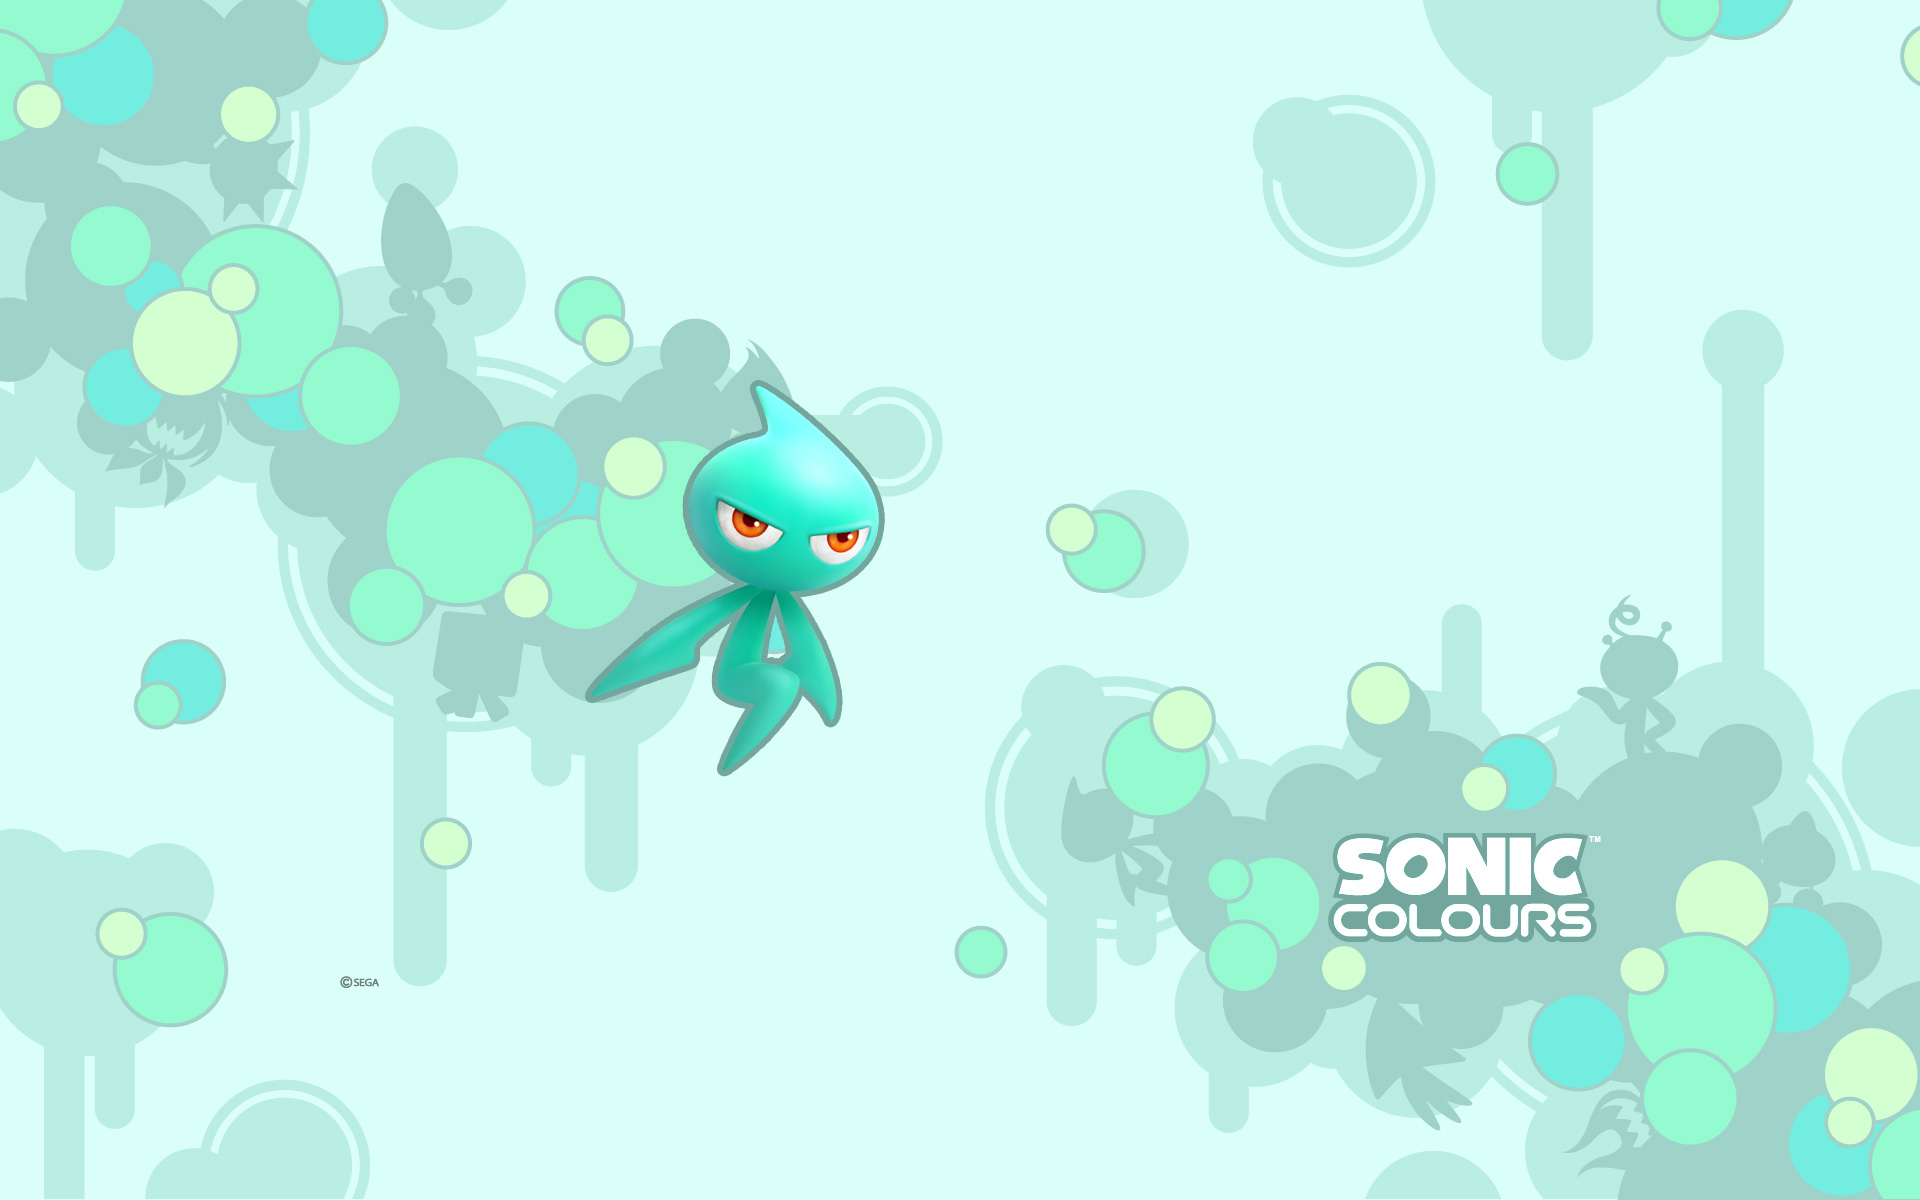 http://www.powersonic.com.br/downloads/papeis/colors/cyan.jpg